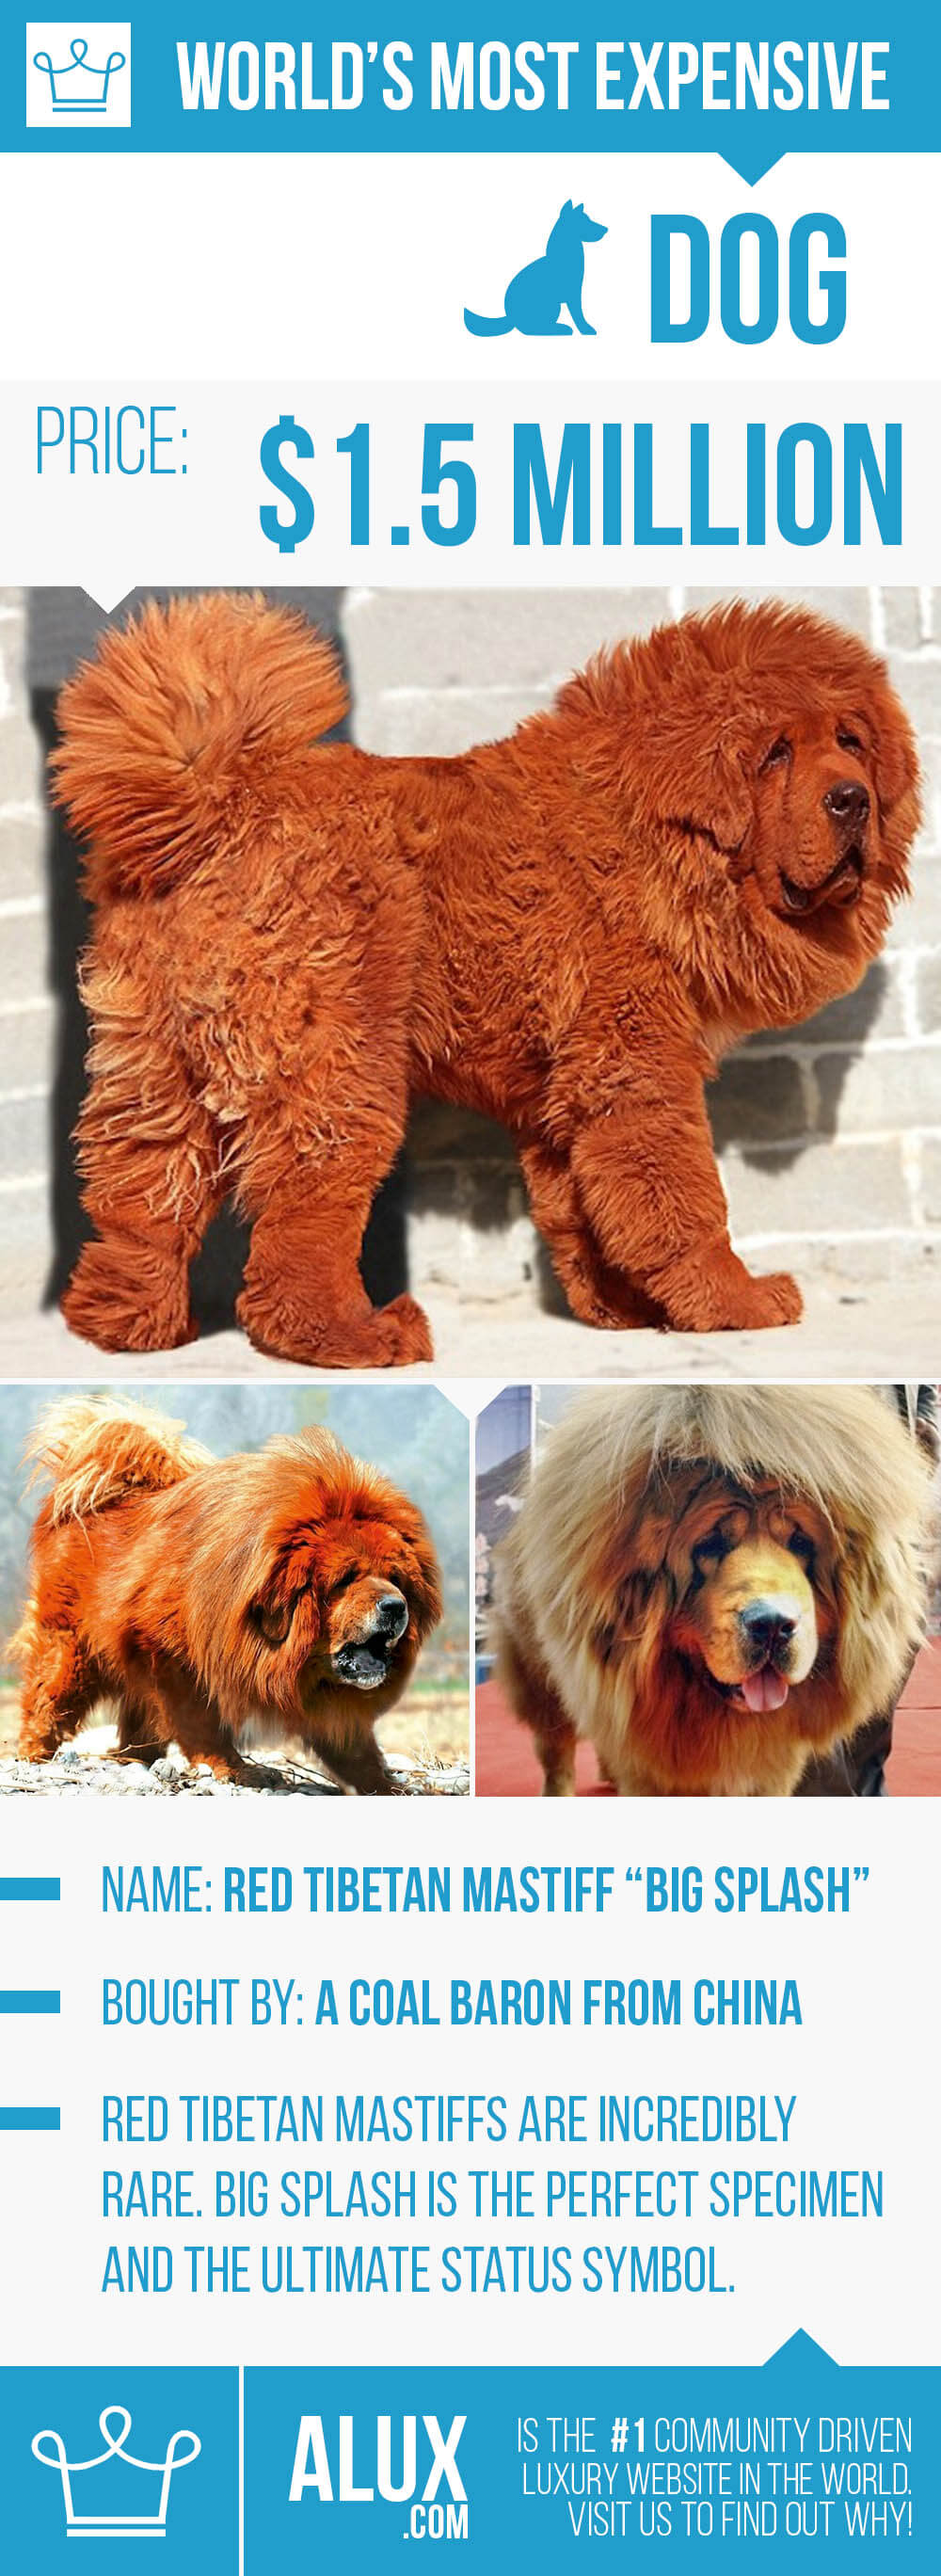 most expensive dog in the world ealuxe alux red tibetan mastiff price how much pictures infographic